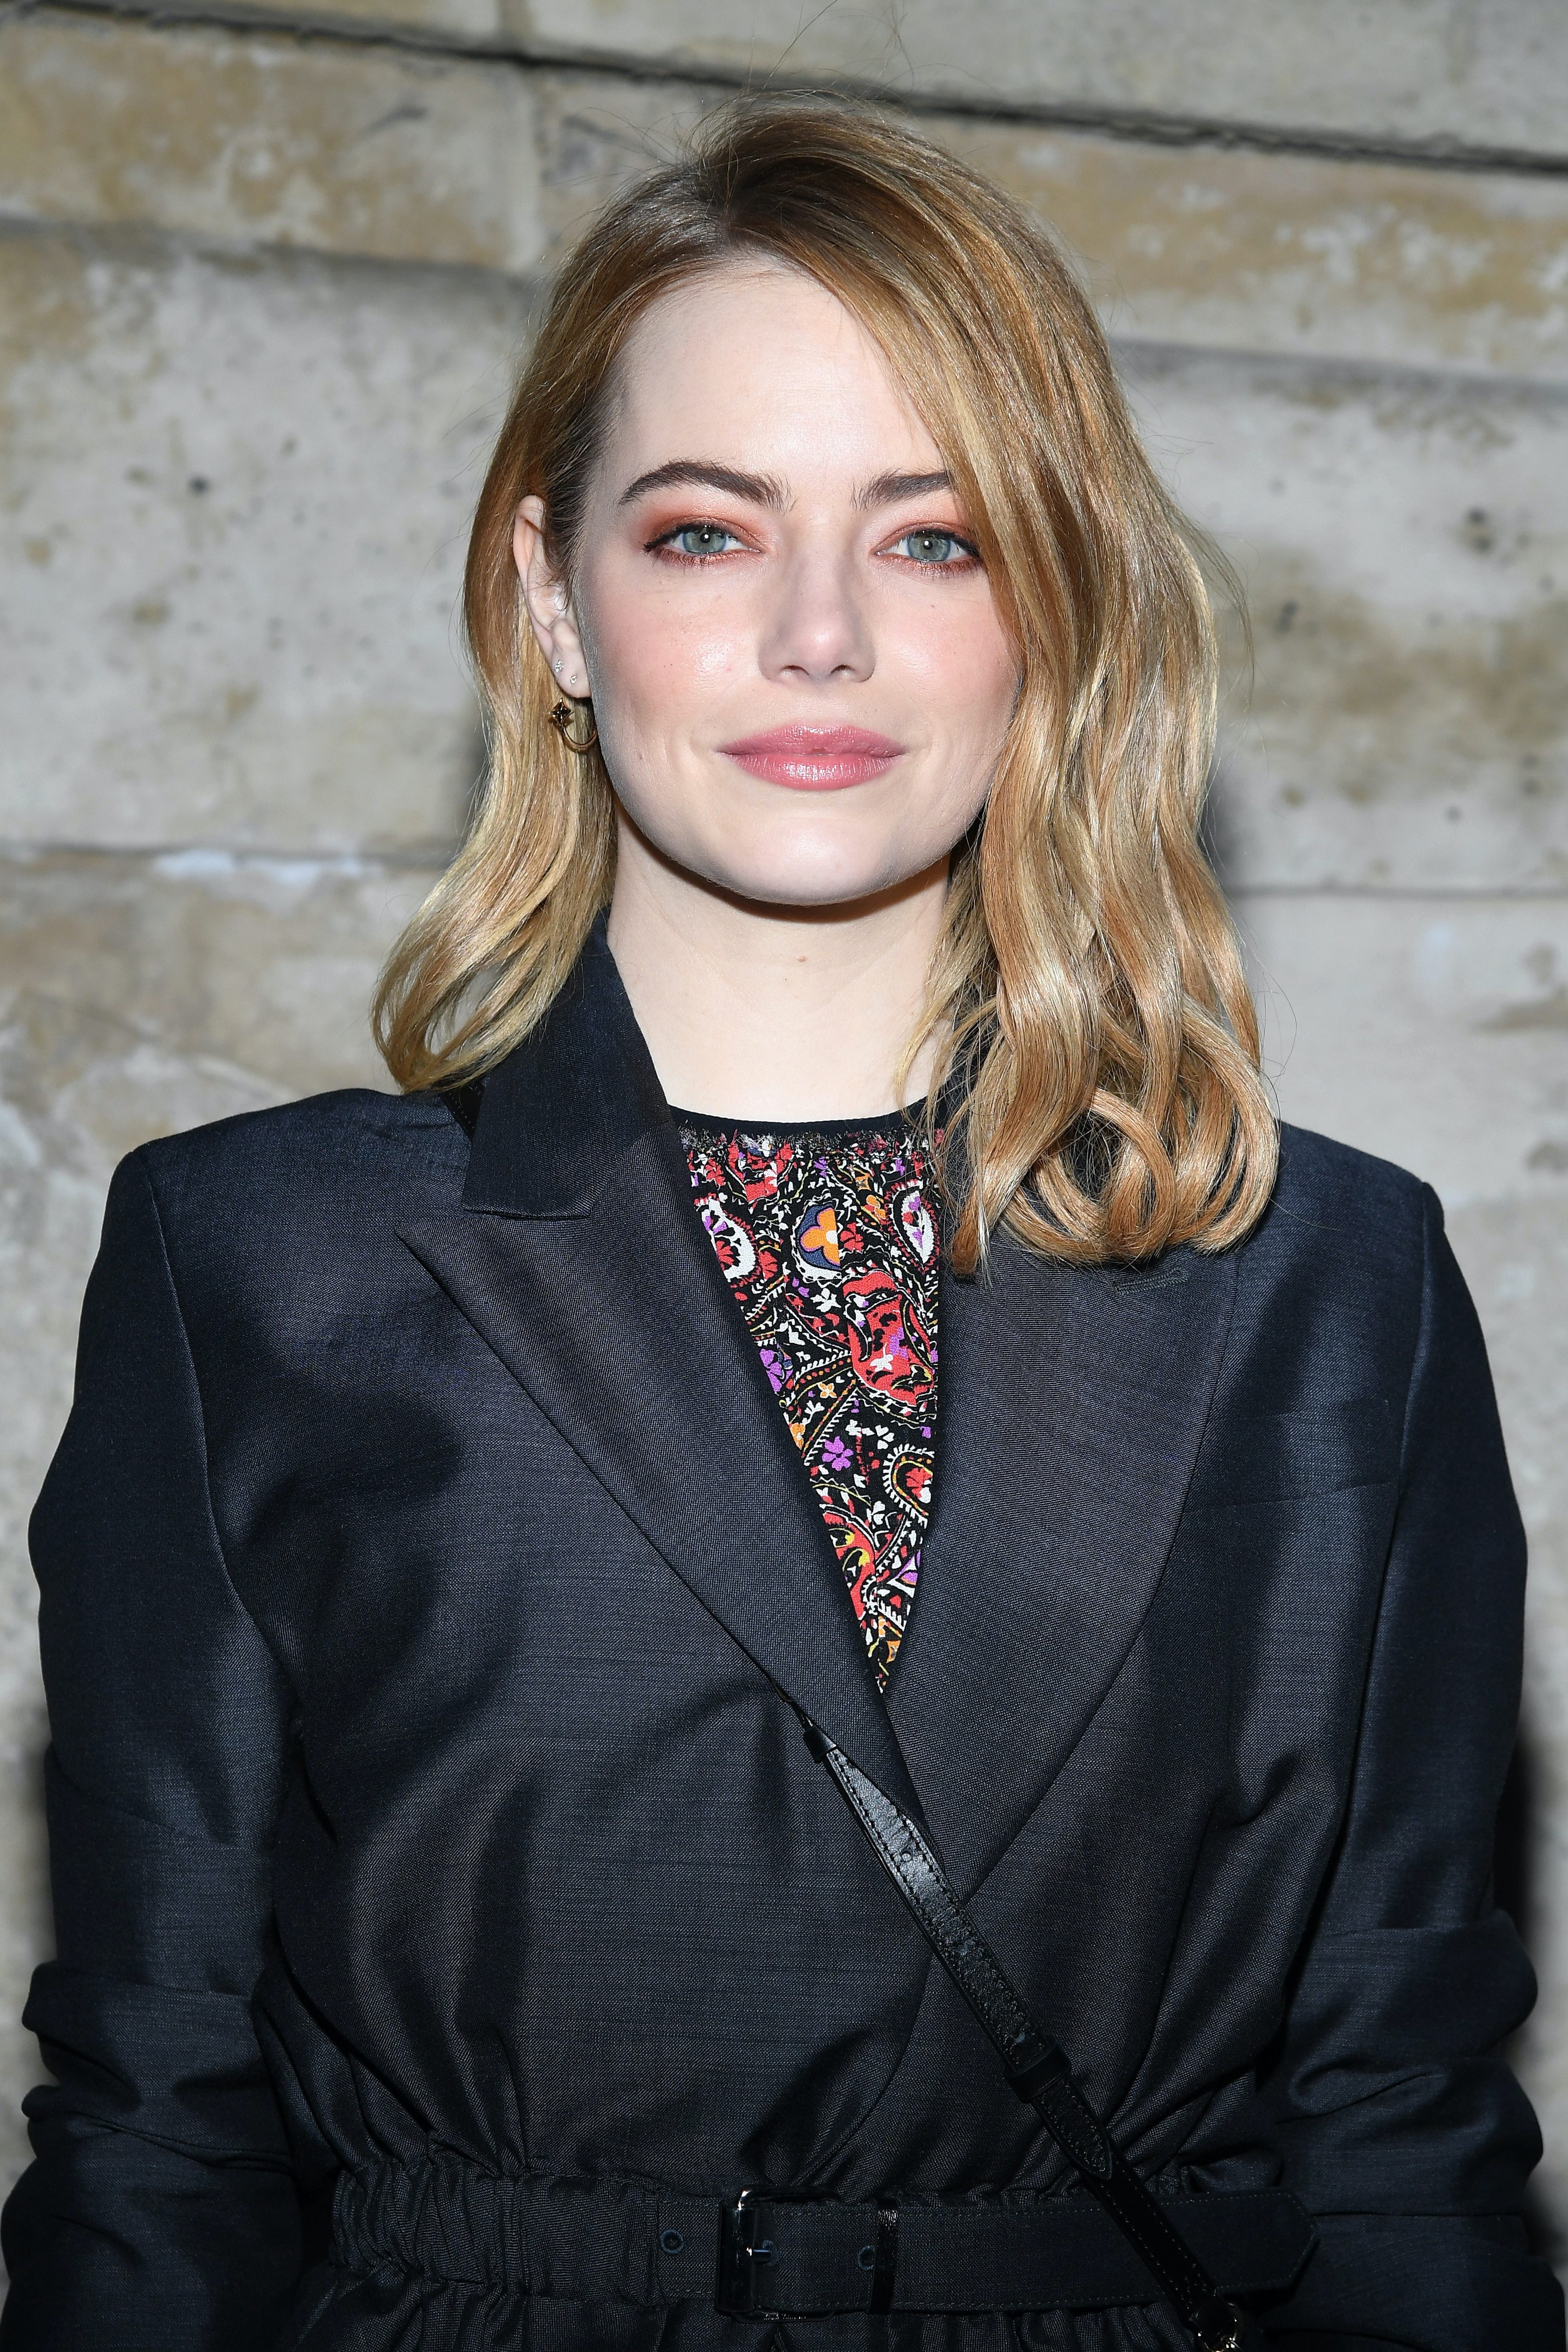 Emma Stone Guest Starred on \u0027The Suite Life of Zack \u0026 Cody